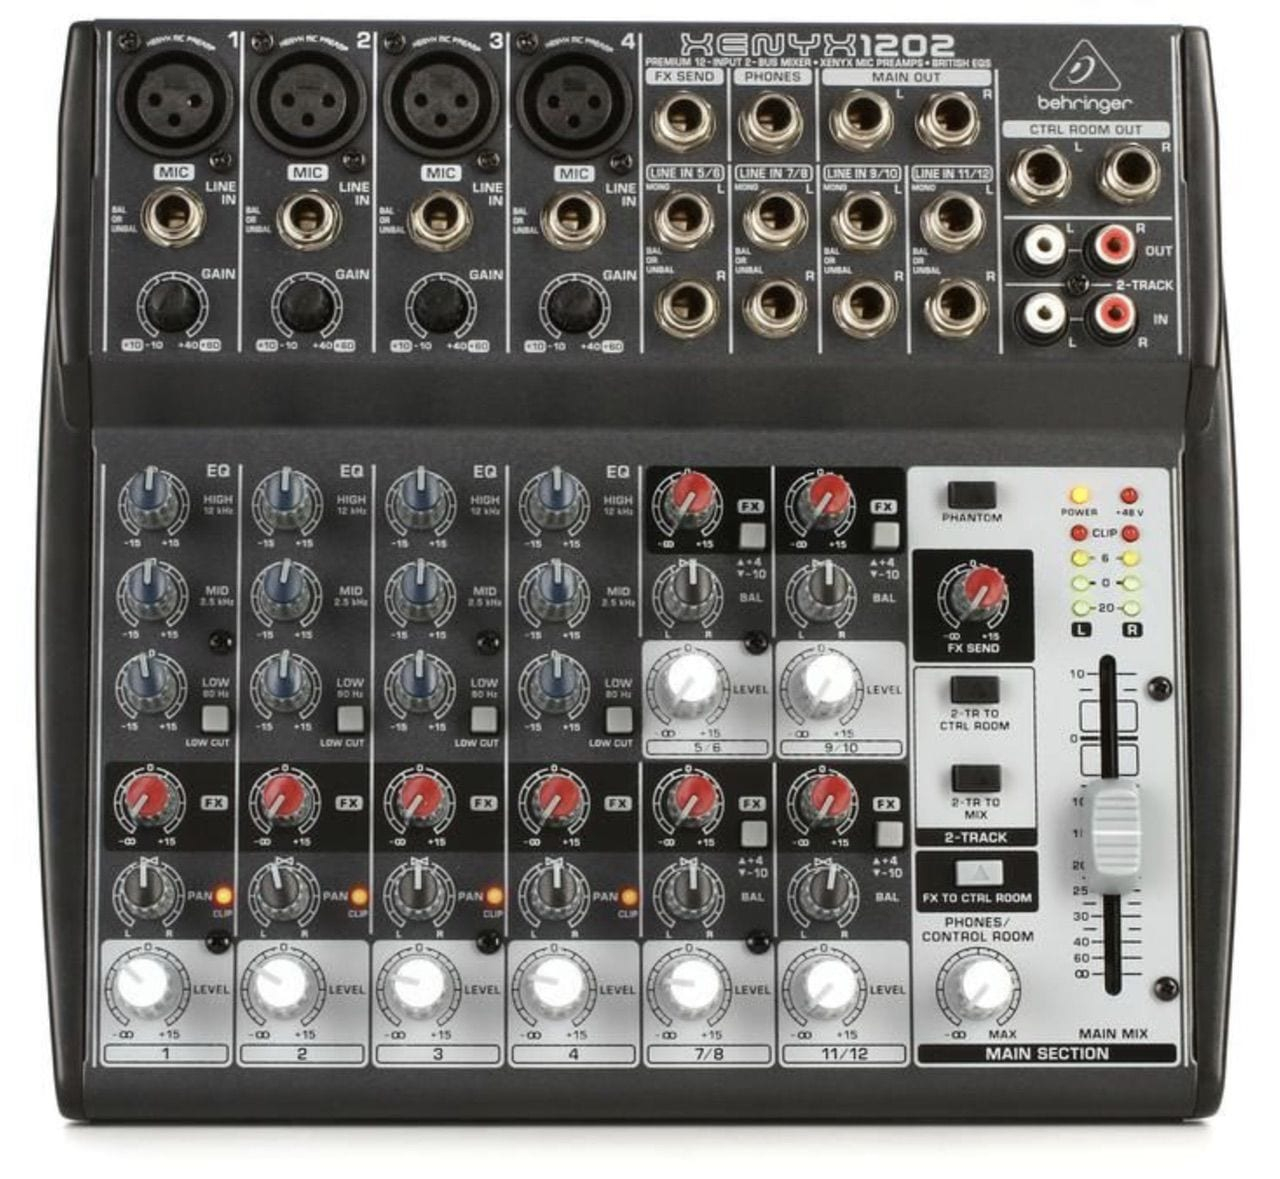 An inexpensive audio mixer for use in live-streaming, the Behringer Q1202USB